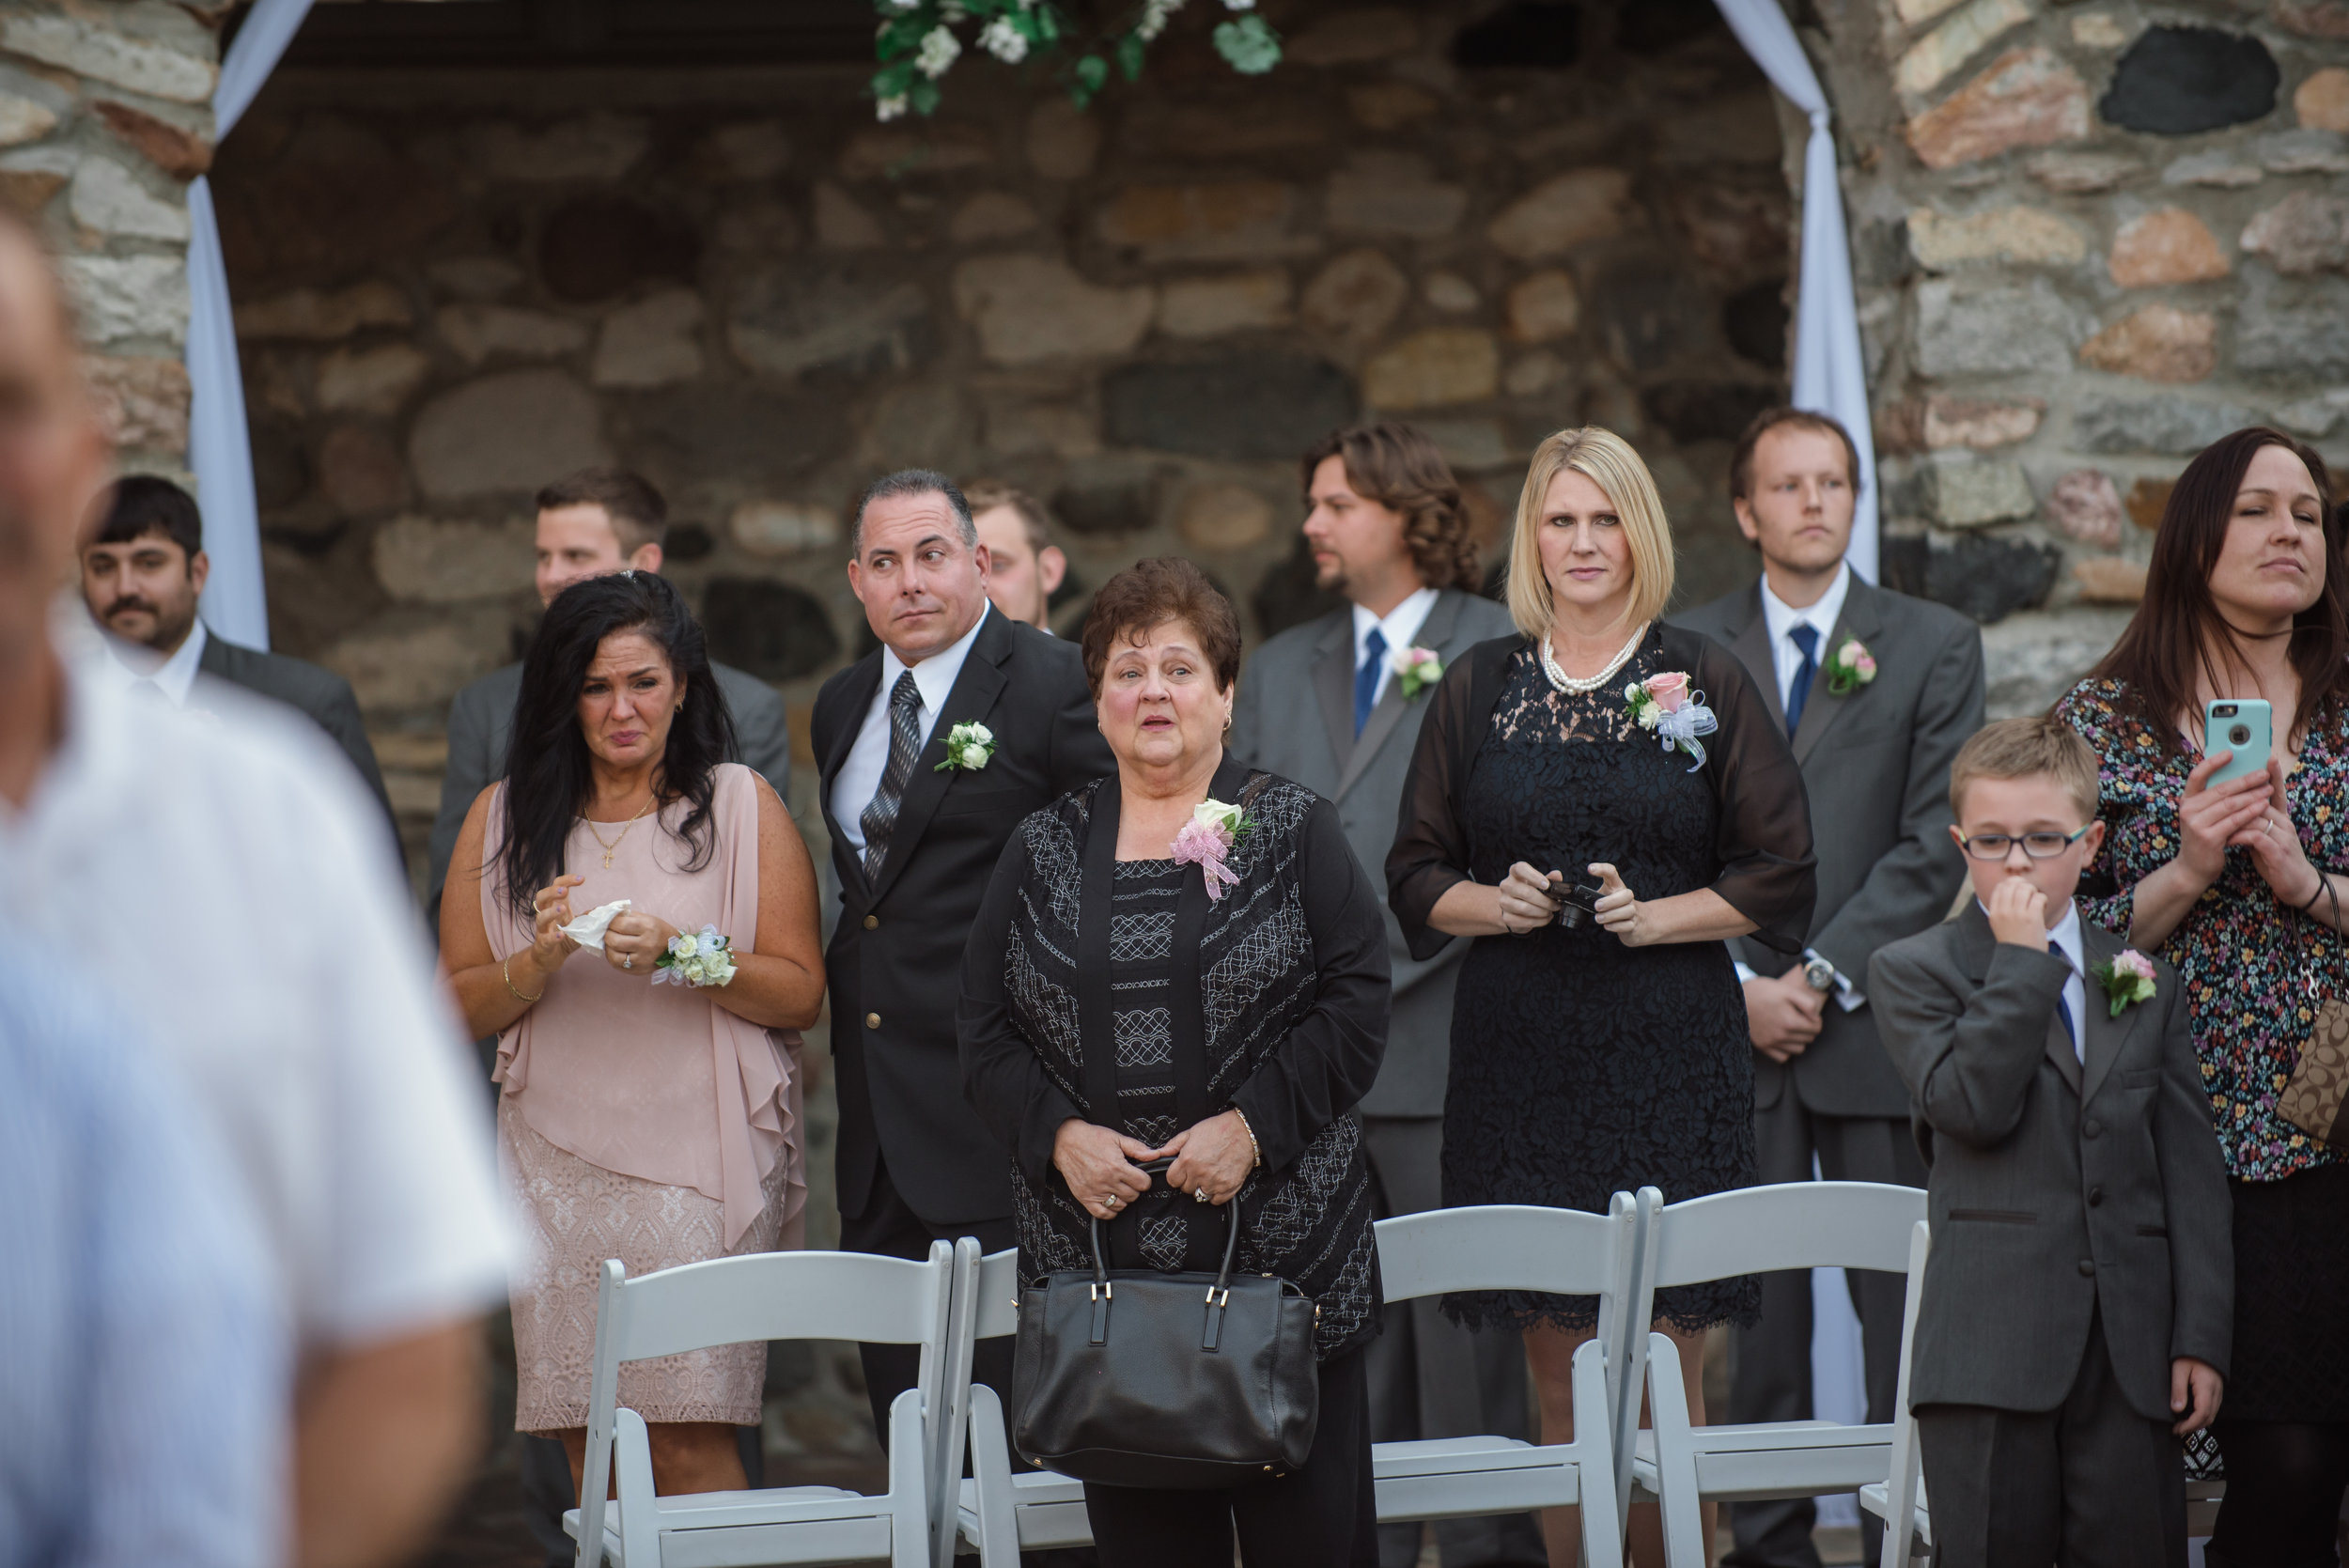 Lindsey&eanWedding (23 of 25)-3.JPG